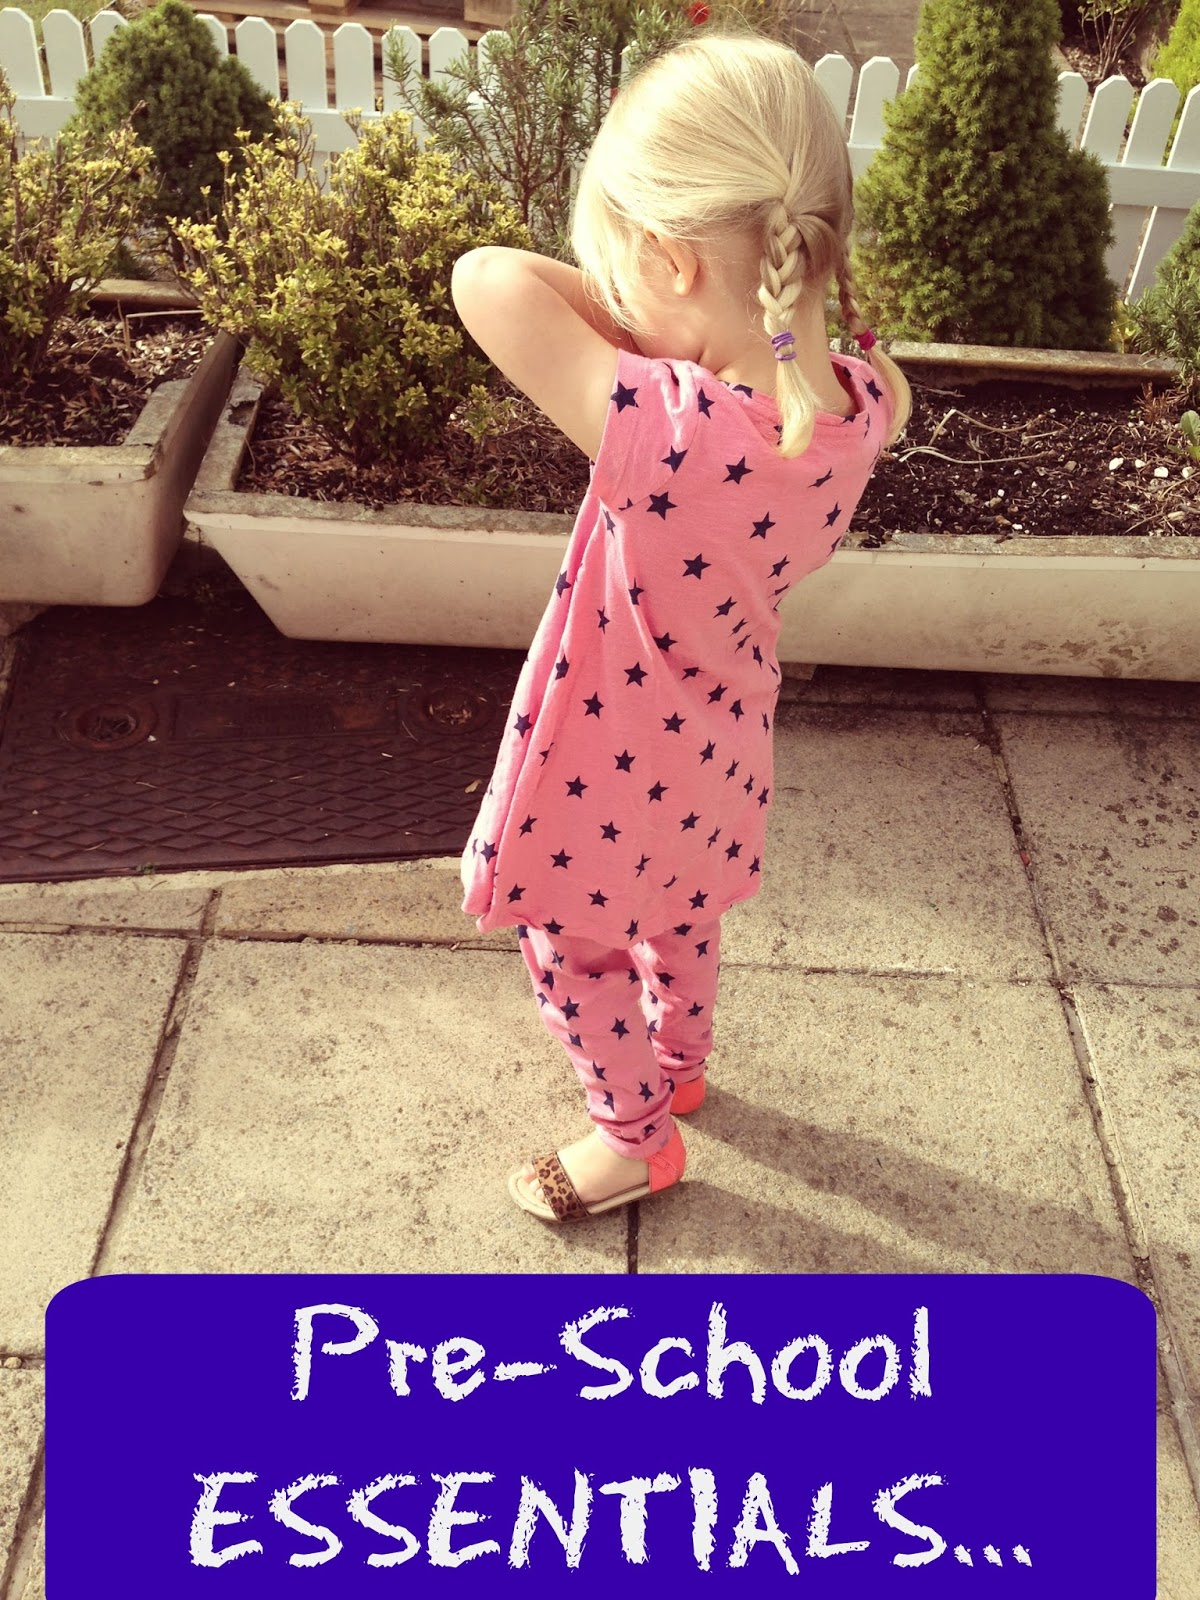 V. I. BUYS: Getting ready for Pre-School and some stylish little essentials!